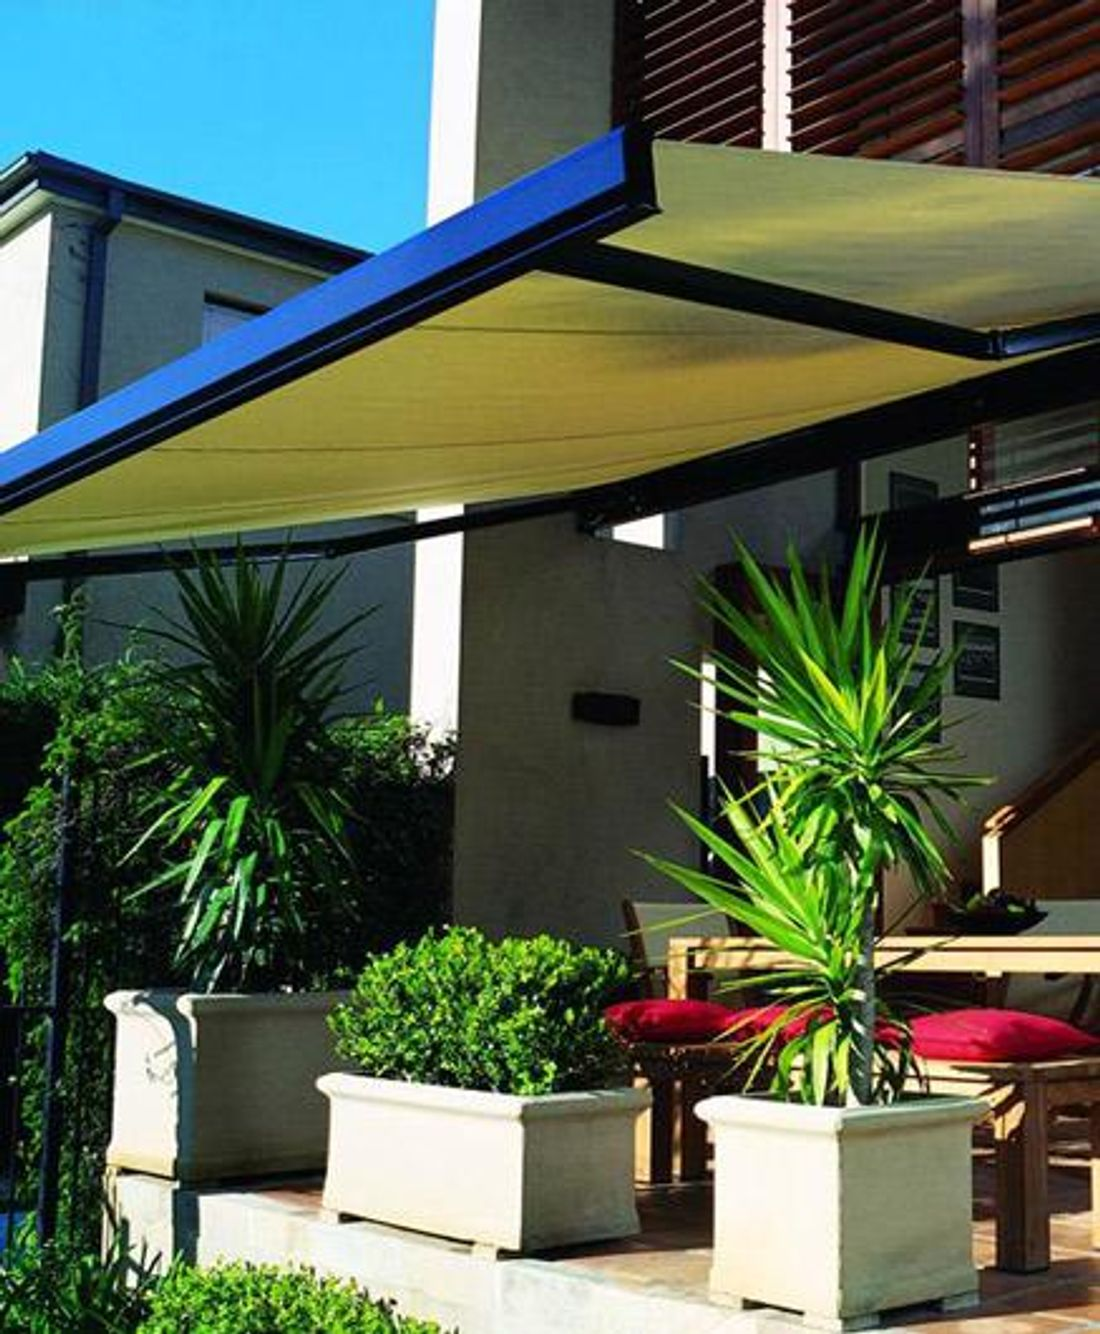 2020 How Much Does a Patio Cover Cost? - hipages.com.au